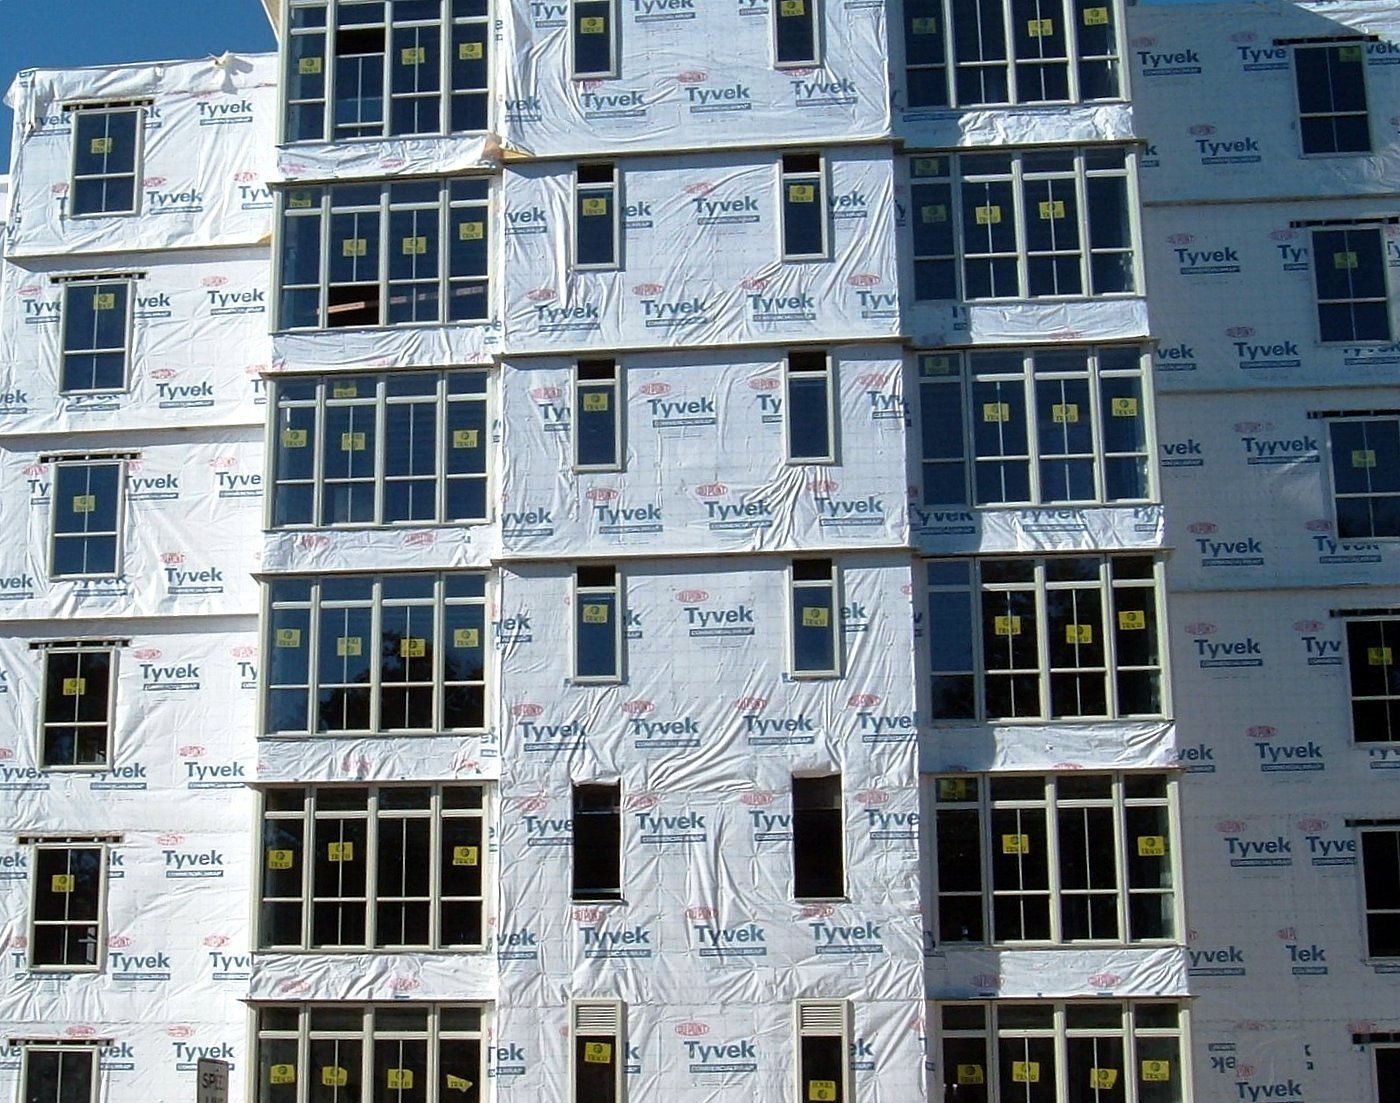 Tyvek_house_wrapa